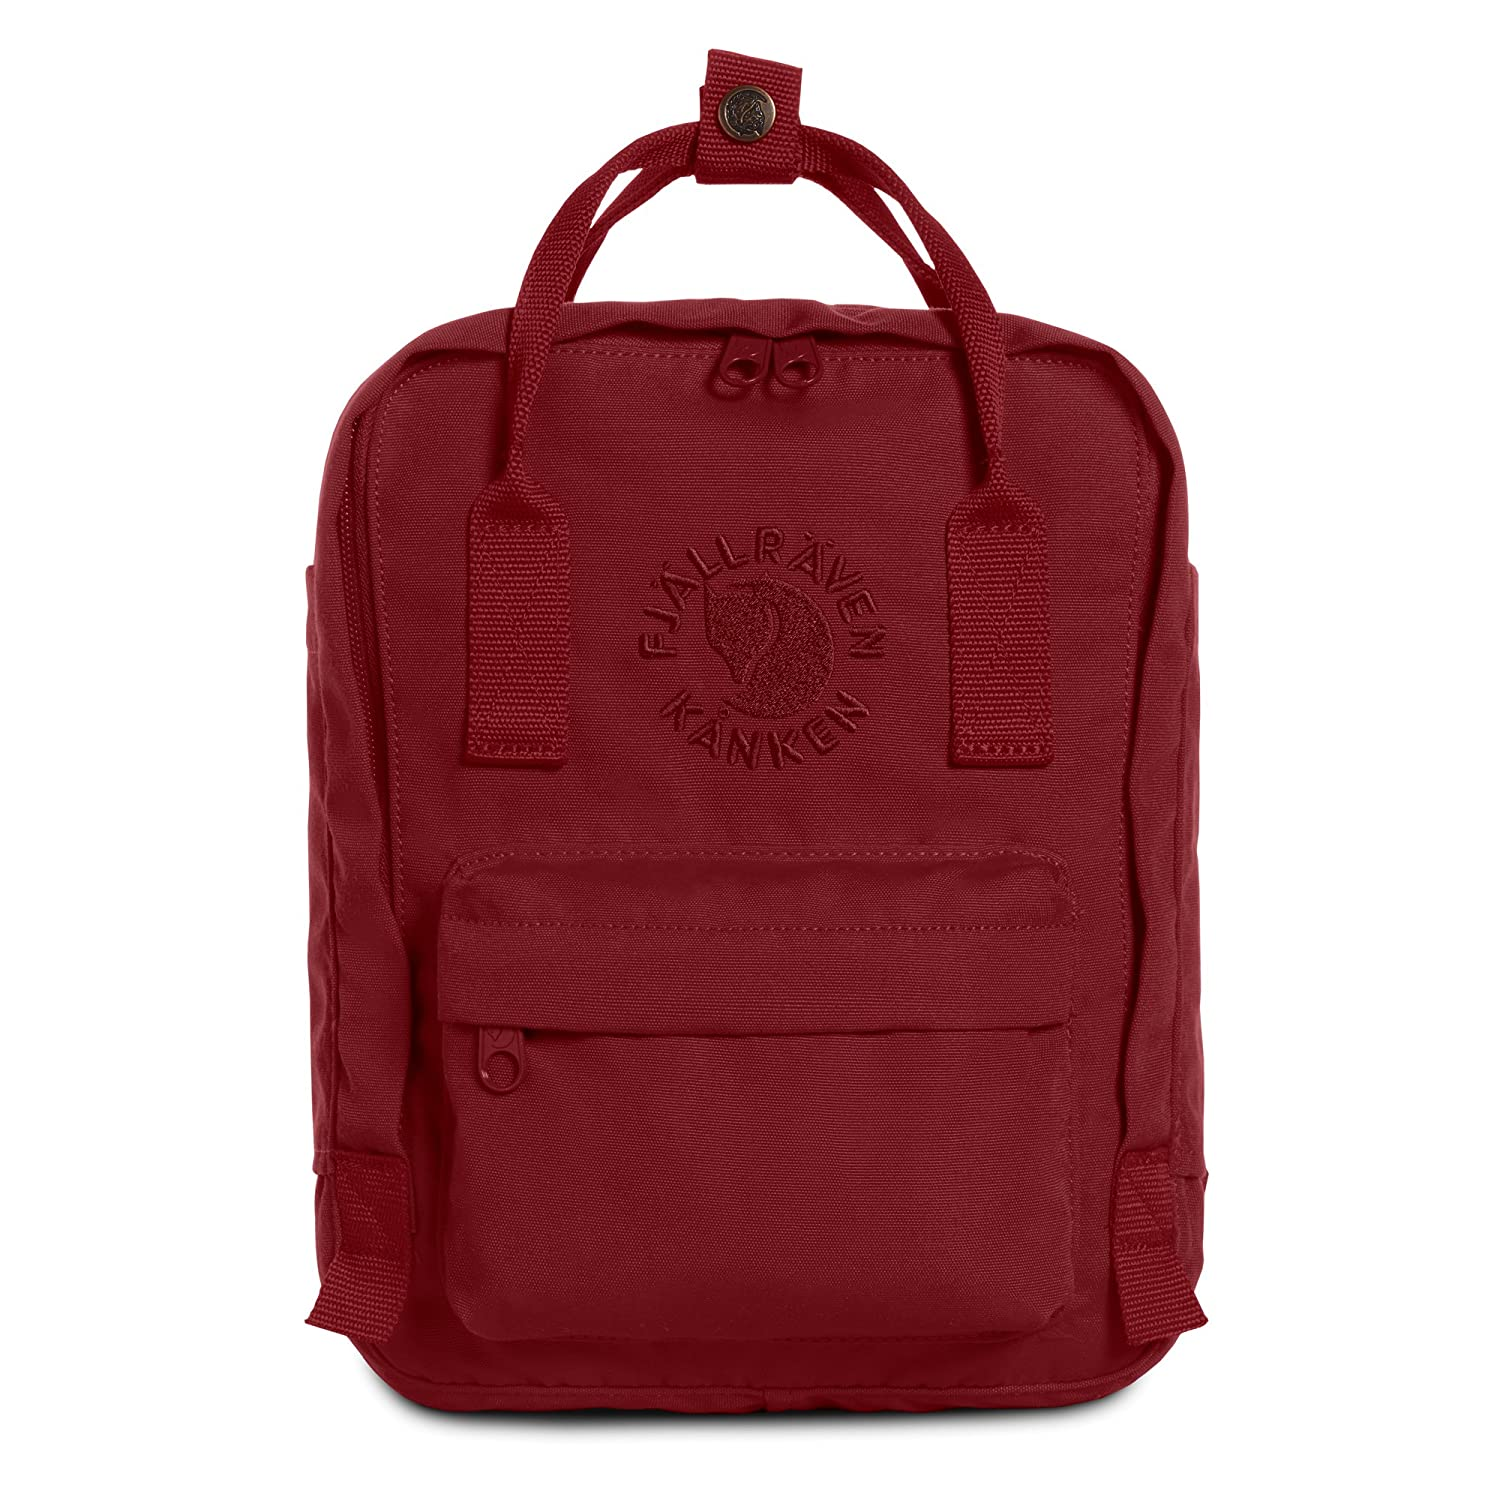 Fjallraven - Kanken, Re-Kanken Mini Recycled Backpack for Everyday Use, Heritage and Responsibility Since 1960 Black 23549